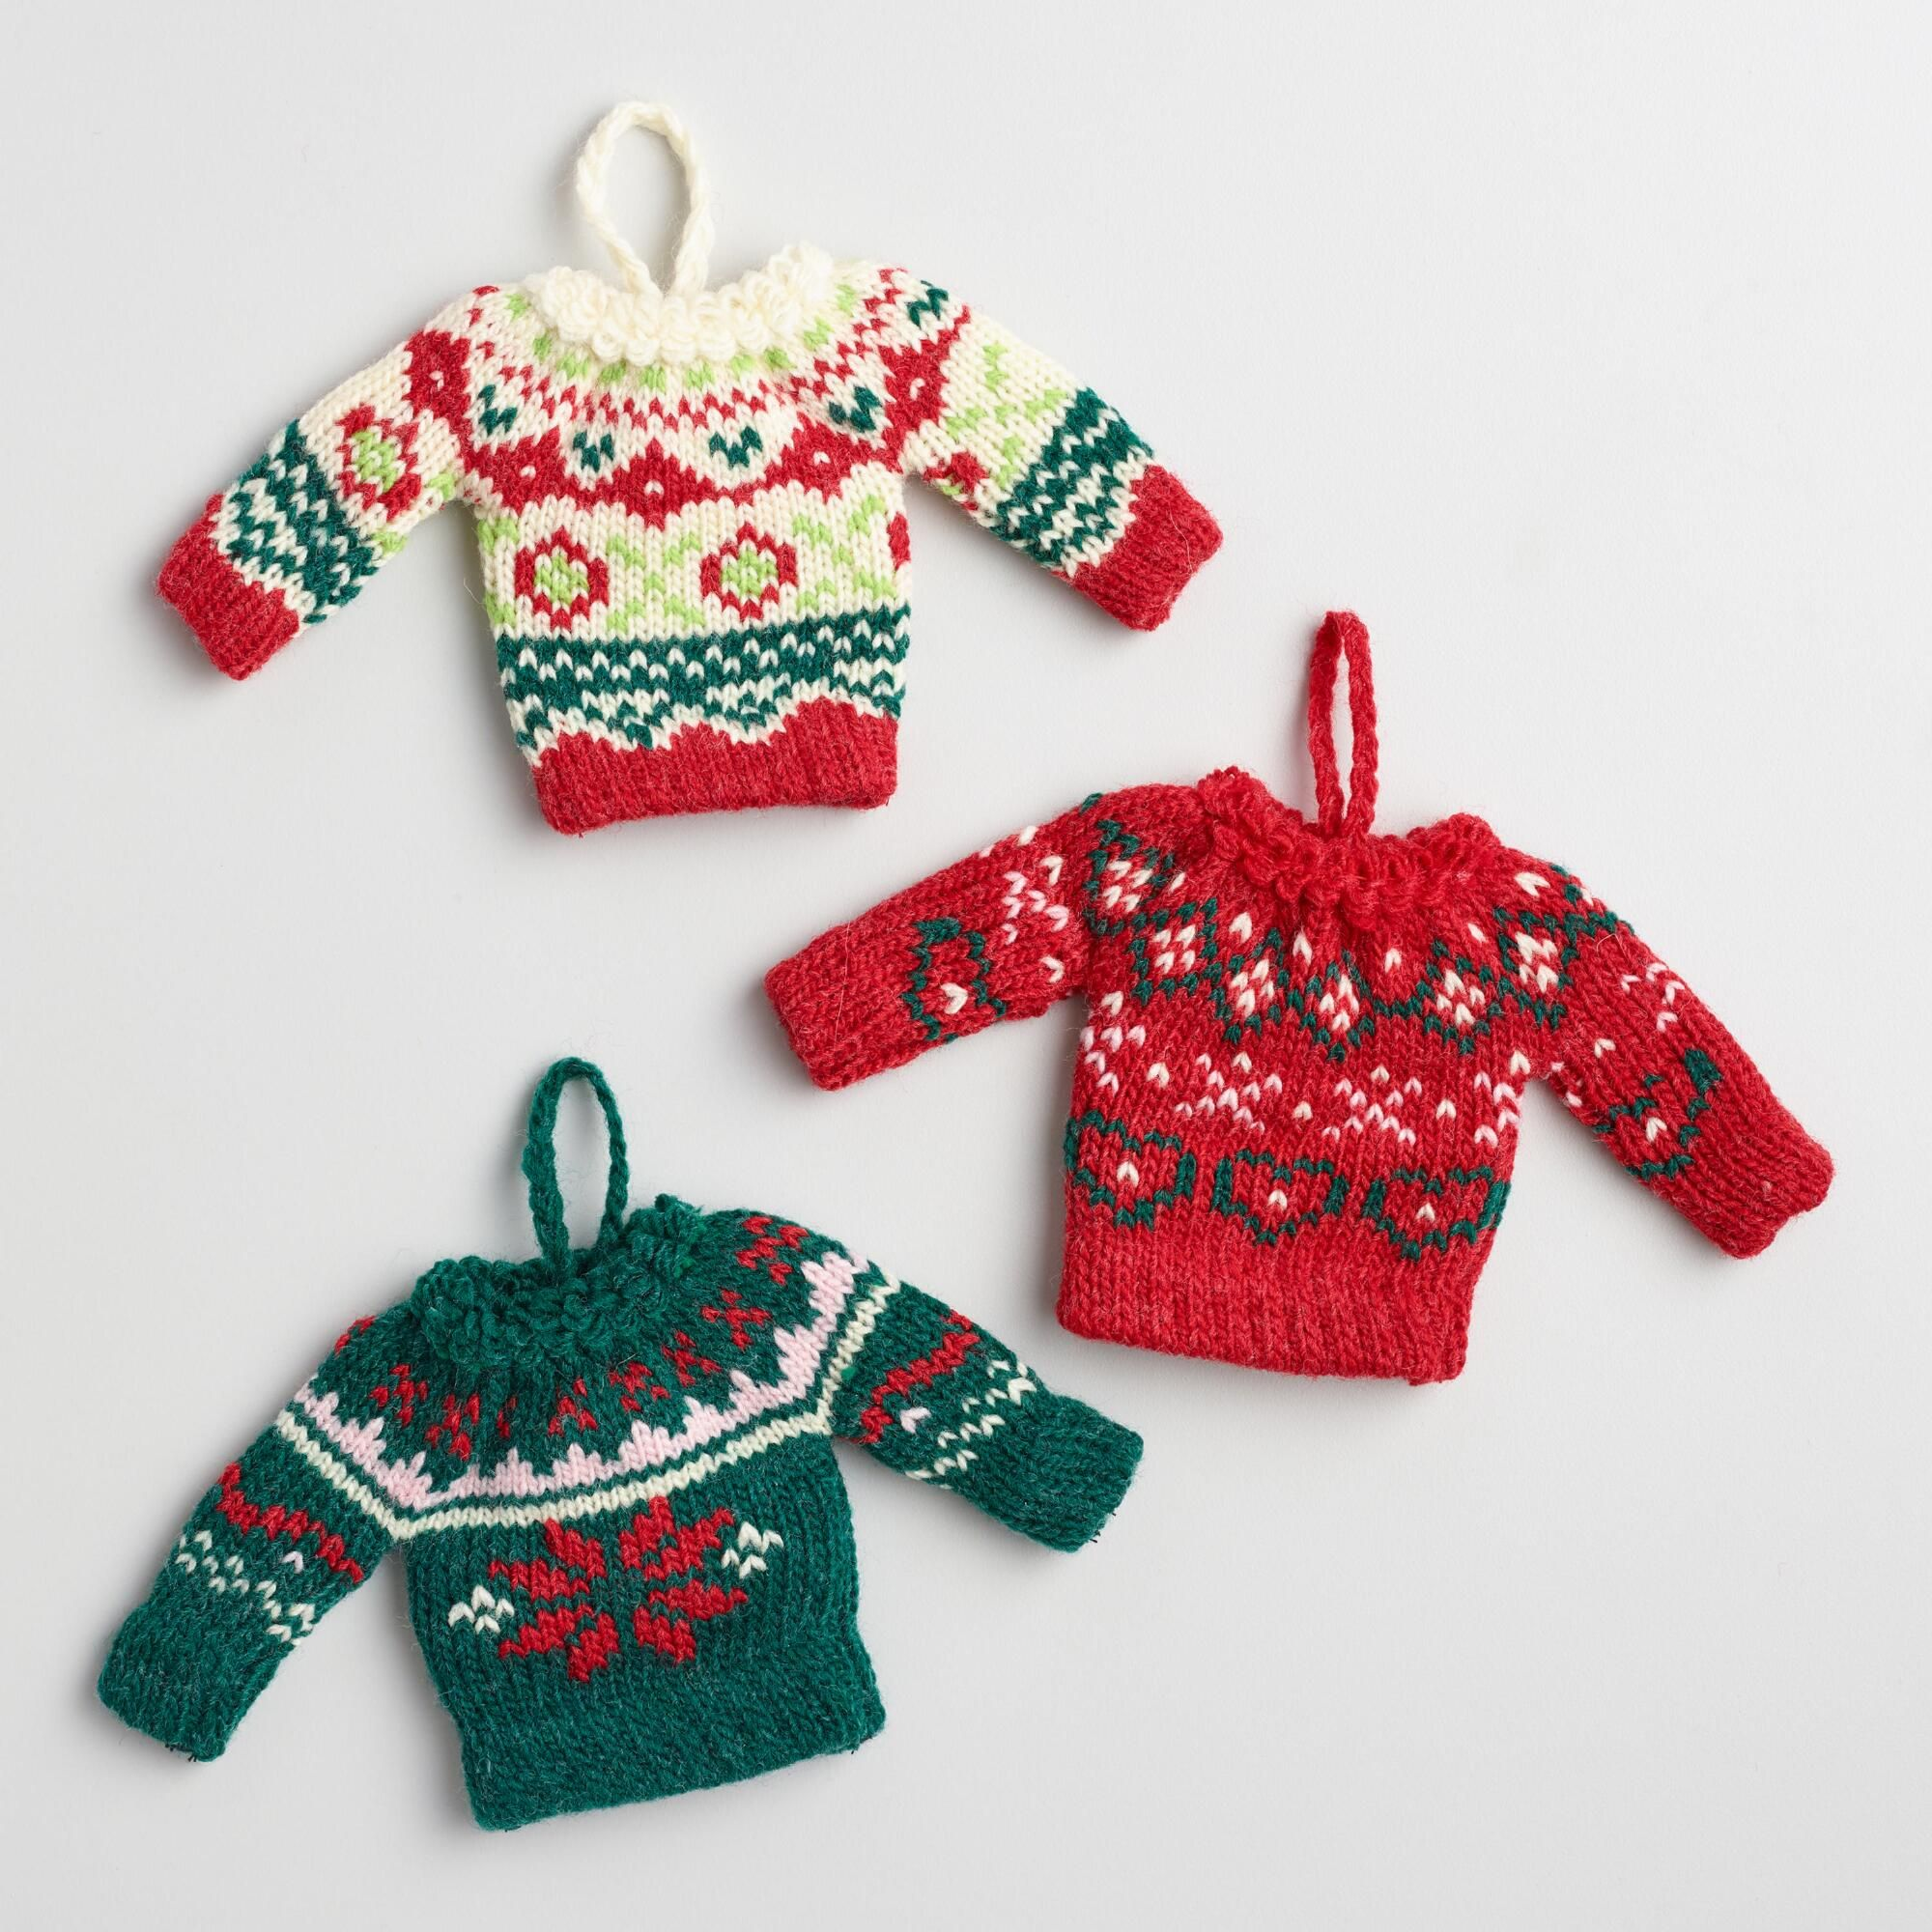 Handcrafted of yarn, these mini holiday sweater ornaments ...